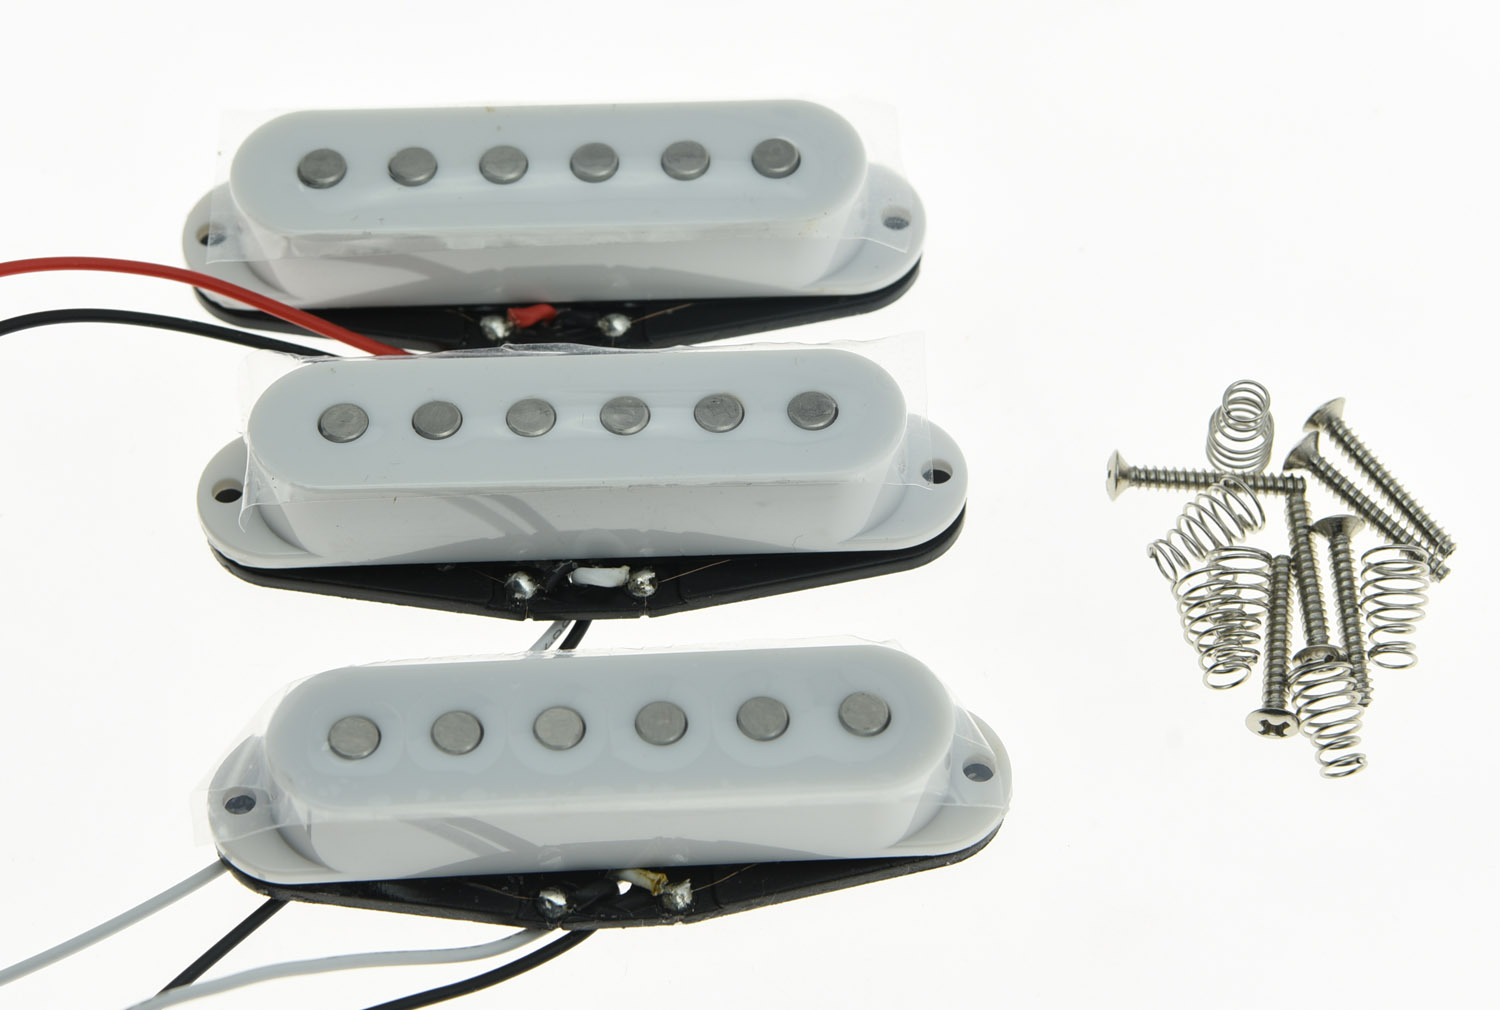 KAISH 3x N/M/B White Alnico 5 Single Coil Pickups High Output Sound Strat SSS Pickup kaish 3x silver mirror guitar single coil pickup surround ring for sized pickup